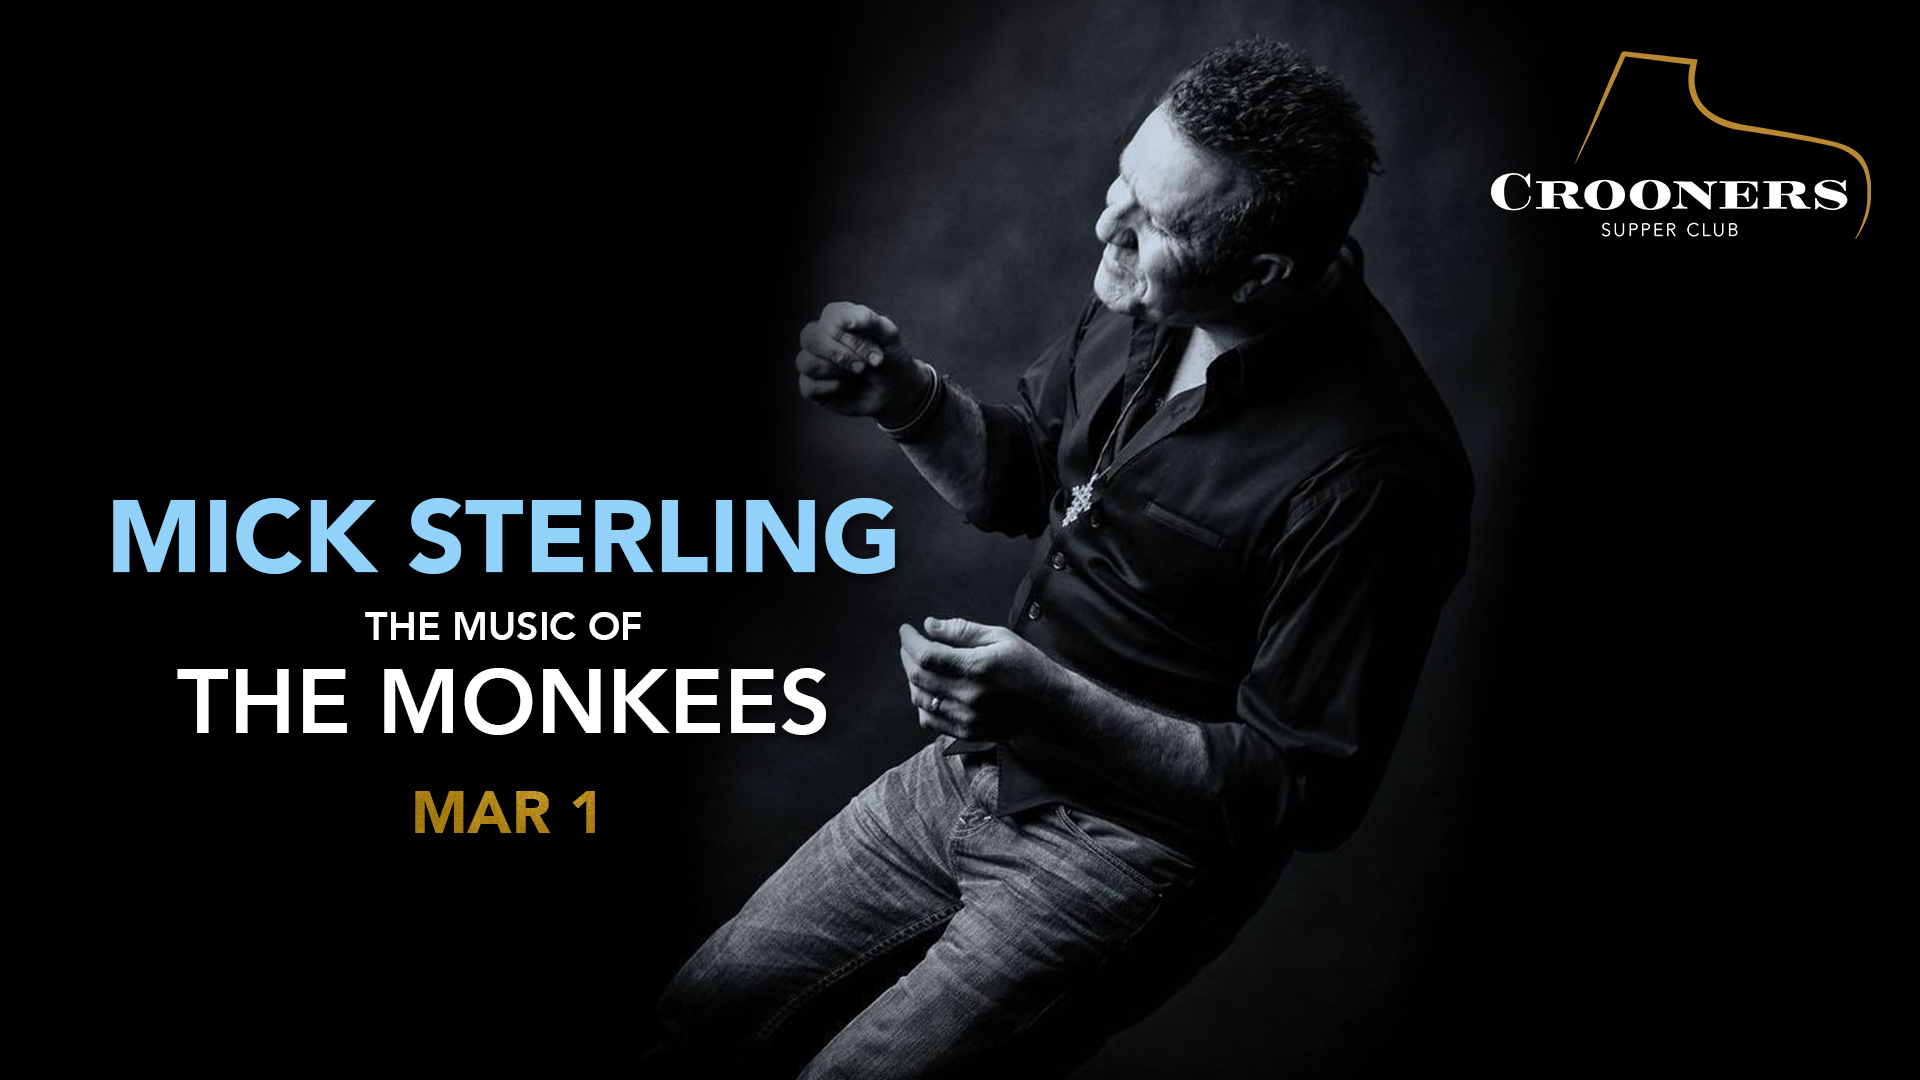 Mick Sterling - The Music of The Monkees - Prolific showman Mick Sterling leads his powerhouse band in a night full of pleasant surprises as one of the major pop-culture phenomena of the '60s and early '70s comes in for a fresh assessment.